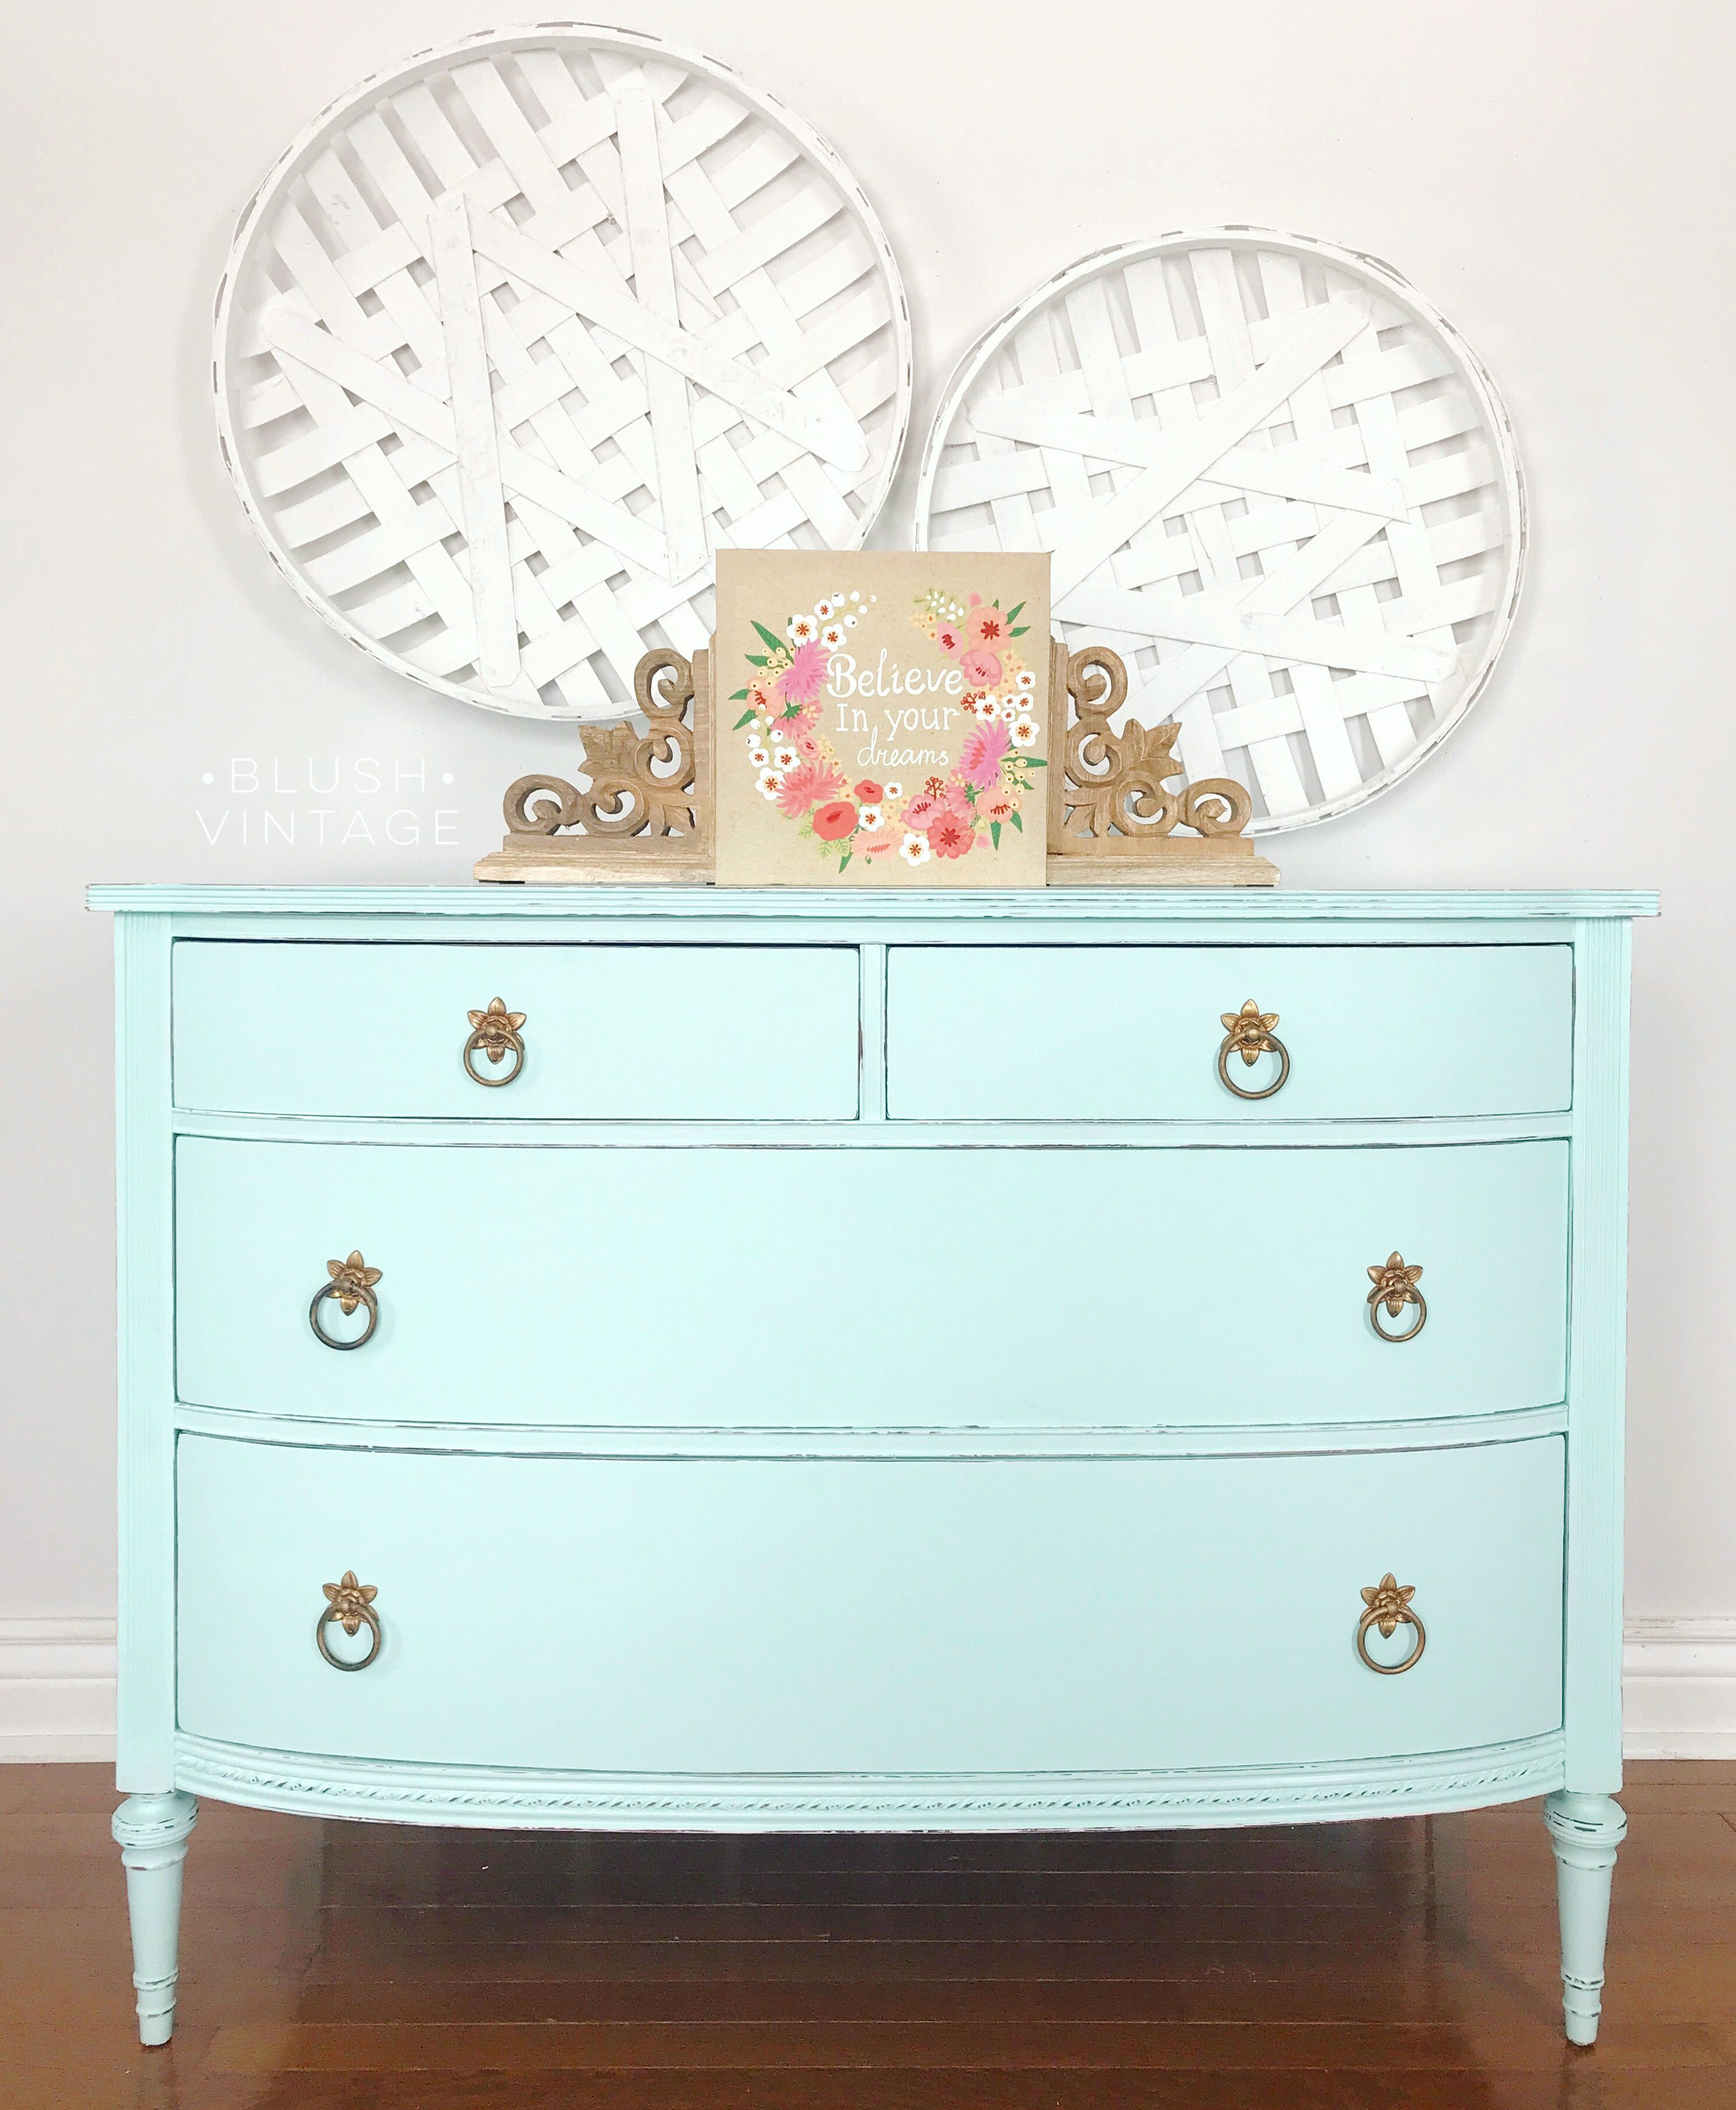 Fusion Mineral Paint In Little Teapot Painted Furniture Ideas Dressers Furniture Painting Furniture Diy